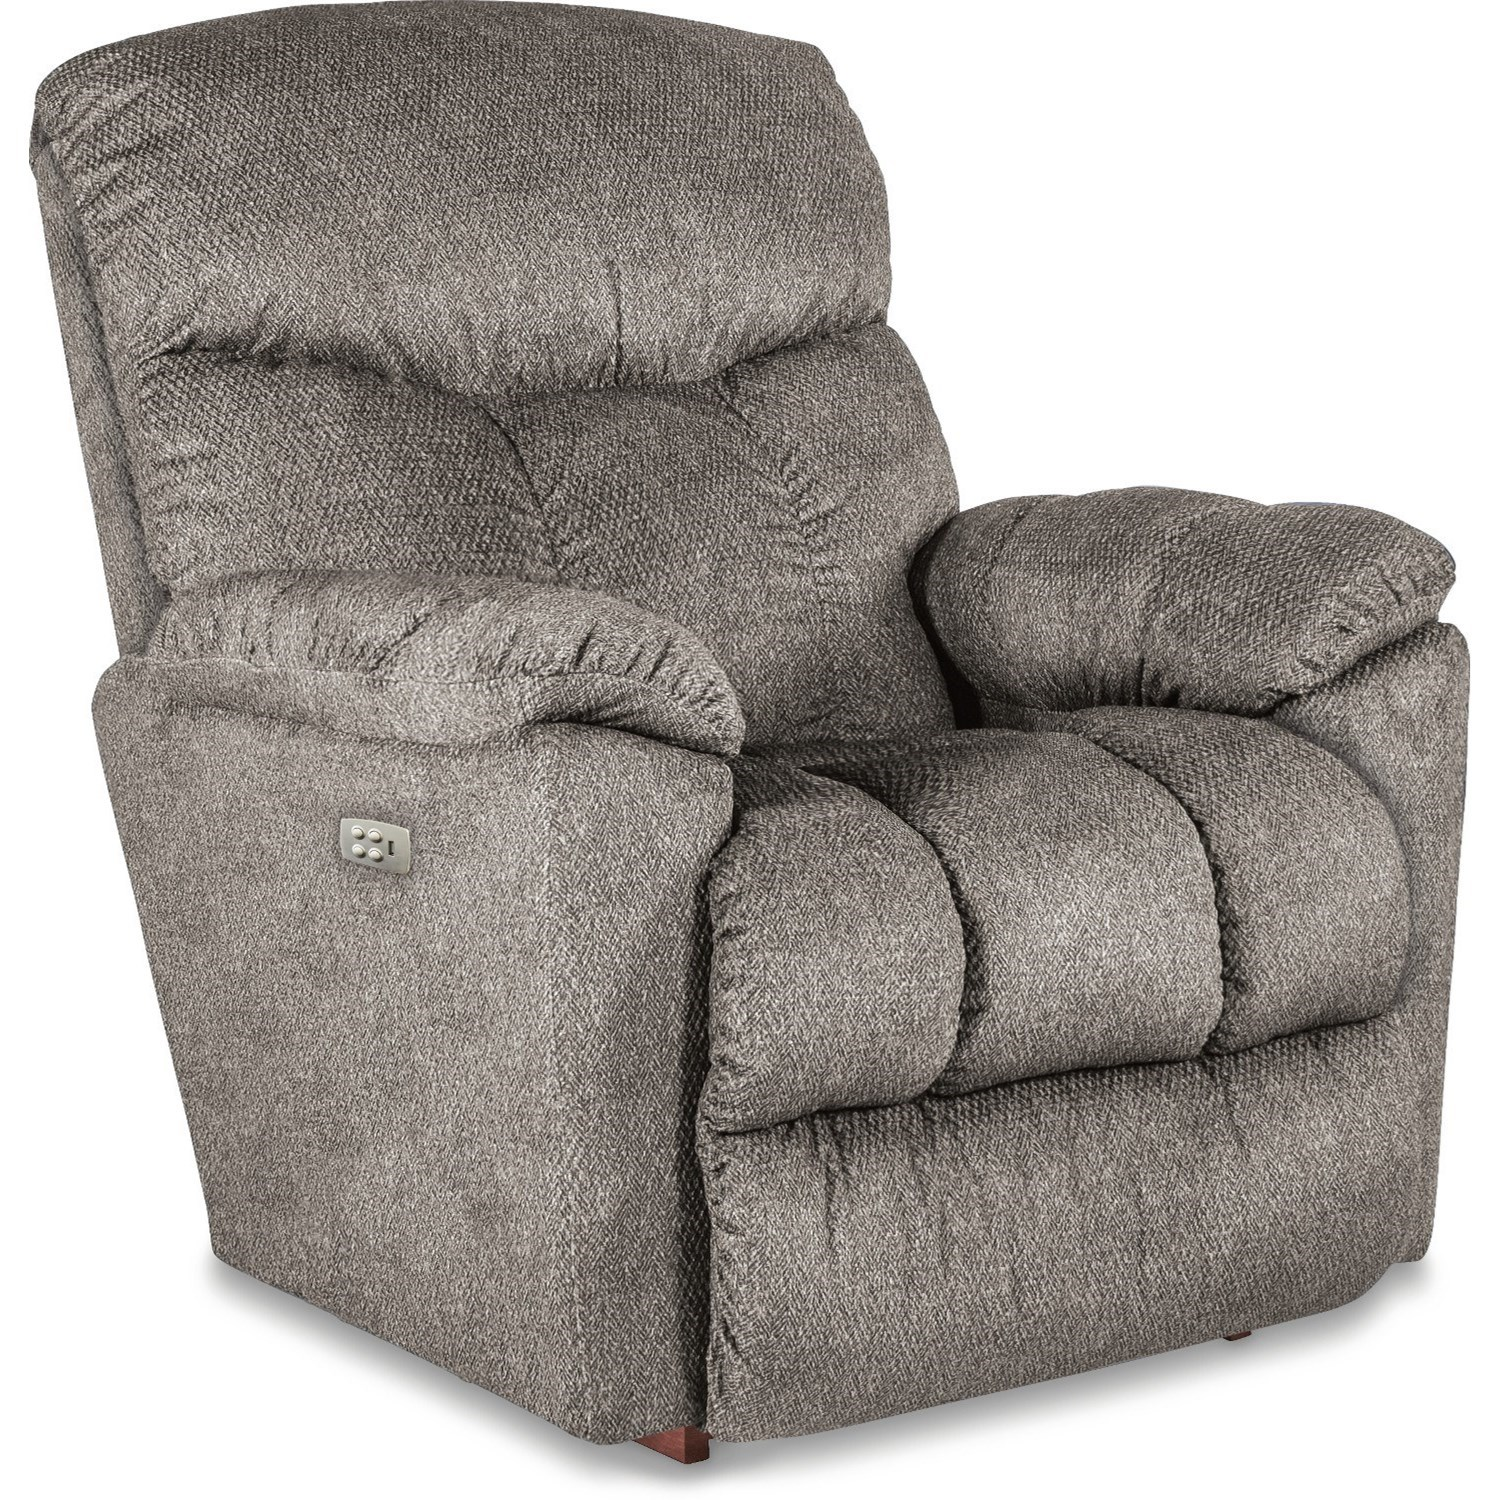 Power-Recline-XRw Wall Saver Recliner with USB Charging Port